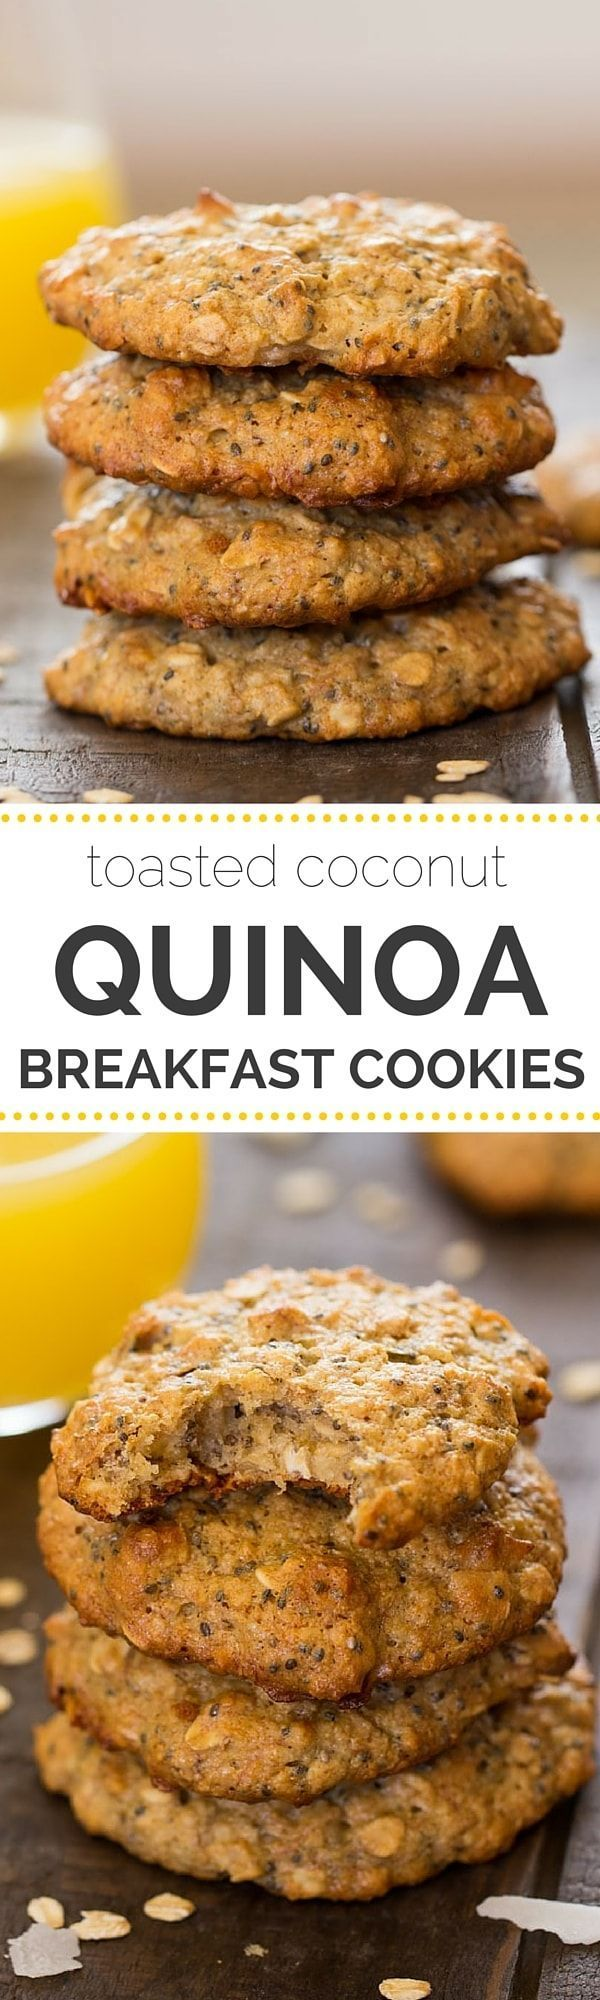 Coconut Quinoa Breakfast Cookies Toasted Coconut Quinoa Breakfast Cookies - these flourless cookies are packed with fiber, naturally sweetened and are gluten-free!Toasted Coconut Quinoa Breakfast Cookies - these flourless cookies are packed with fiber, naturally sweetened and are gluten-free!